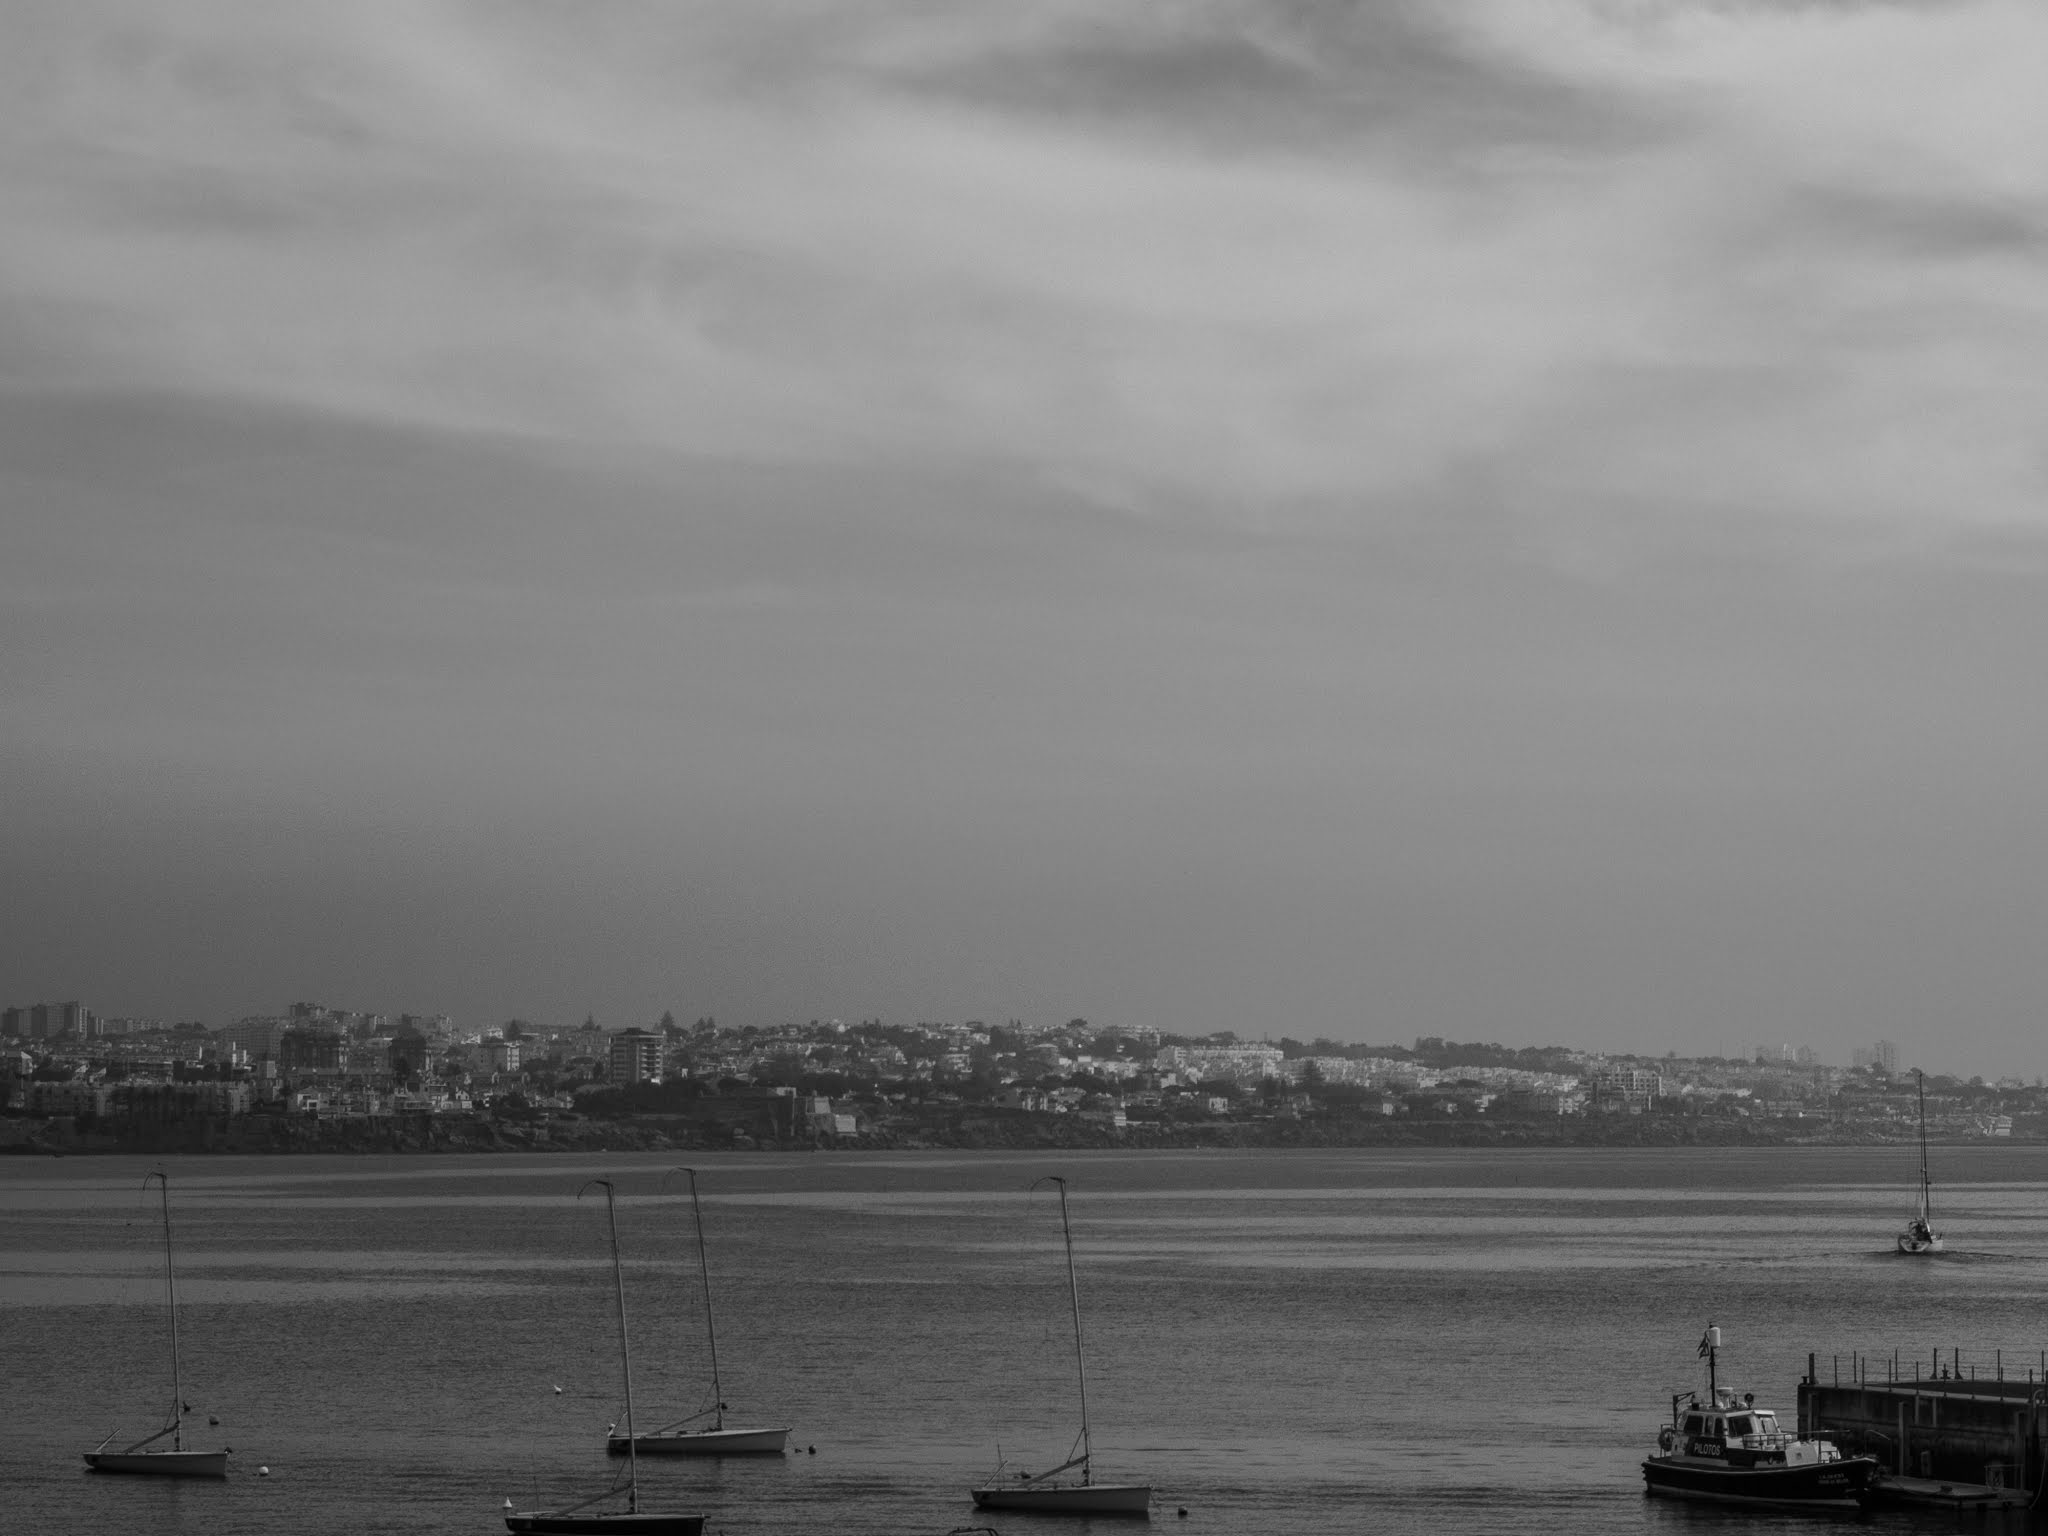 Caiscais bay in Portugal in black and white.